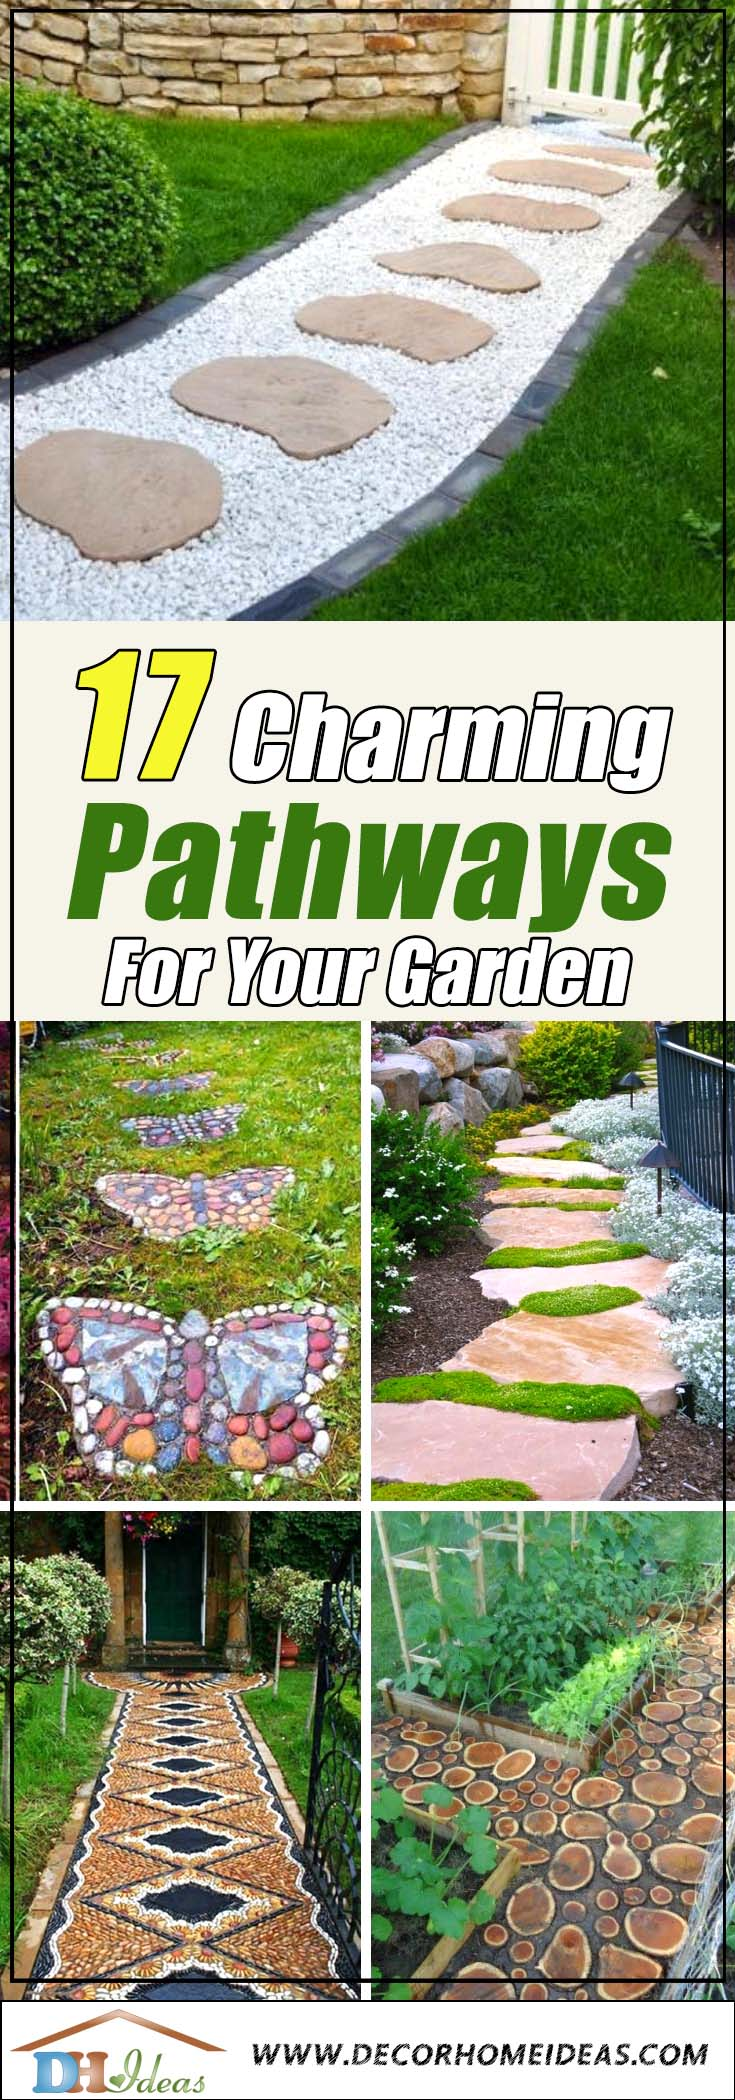 17 Charming Pathways To Make Your Garden The Best In The Neighborhood |  Decor Home Ideas